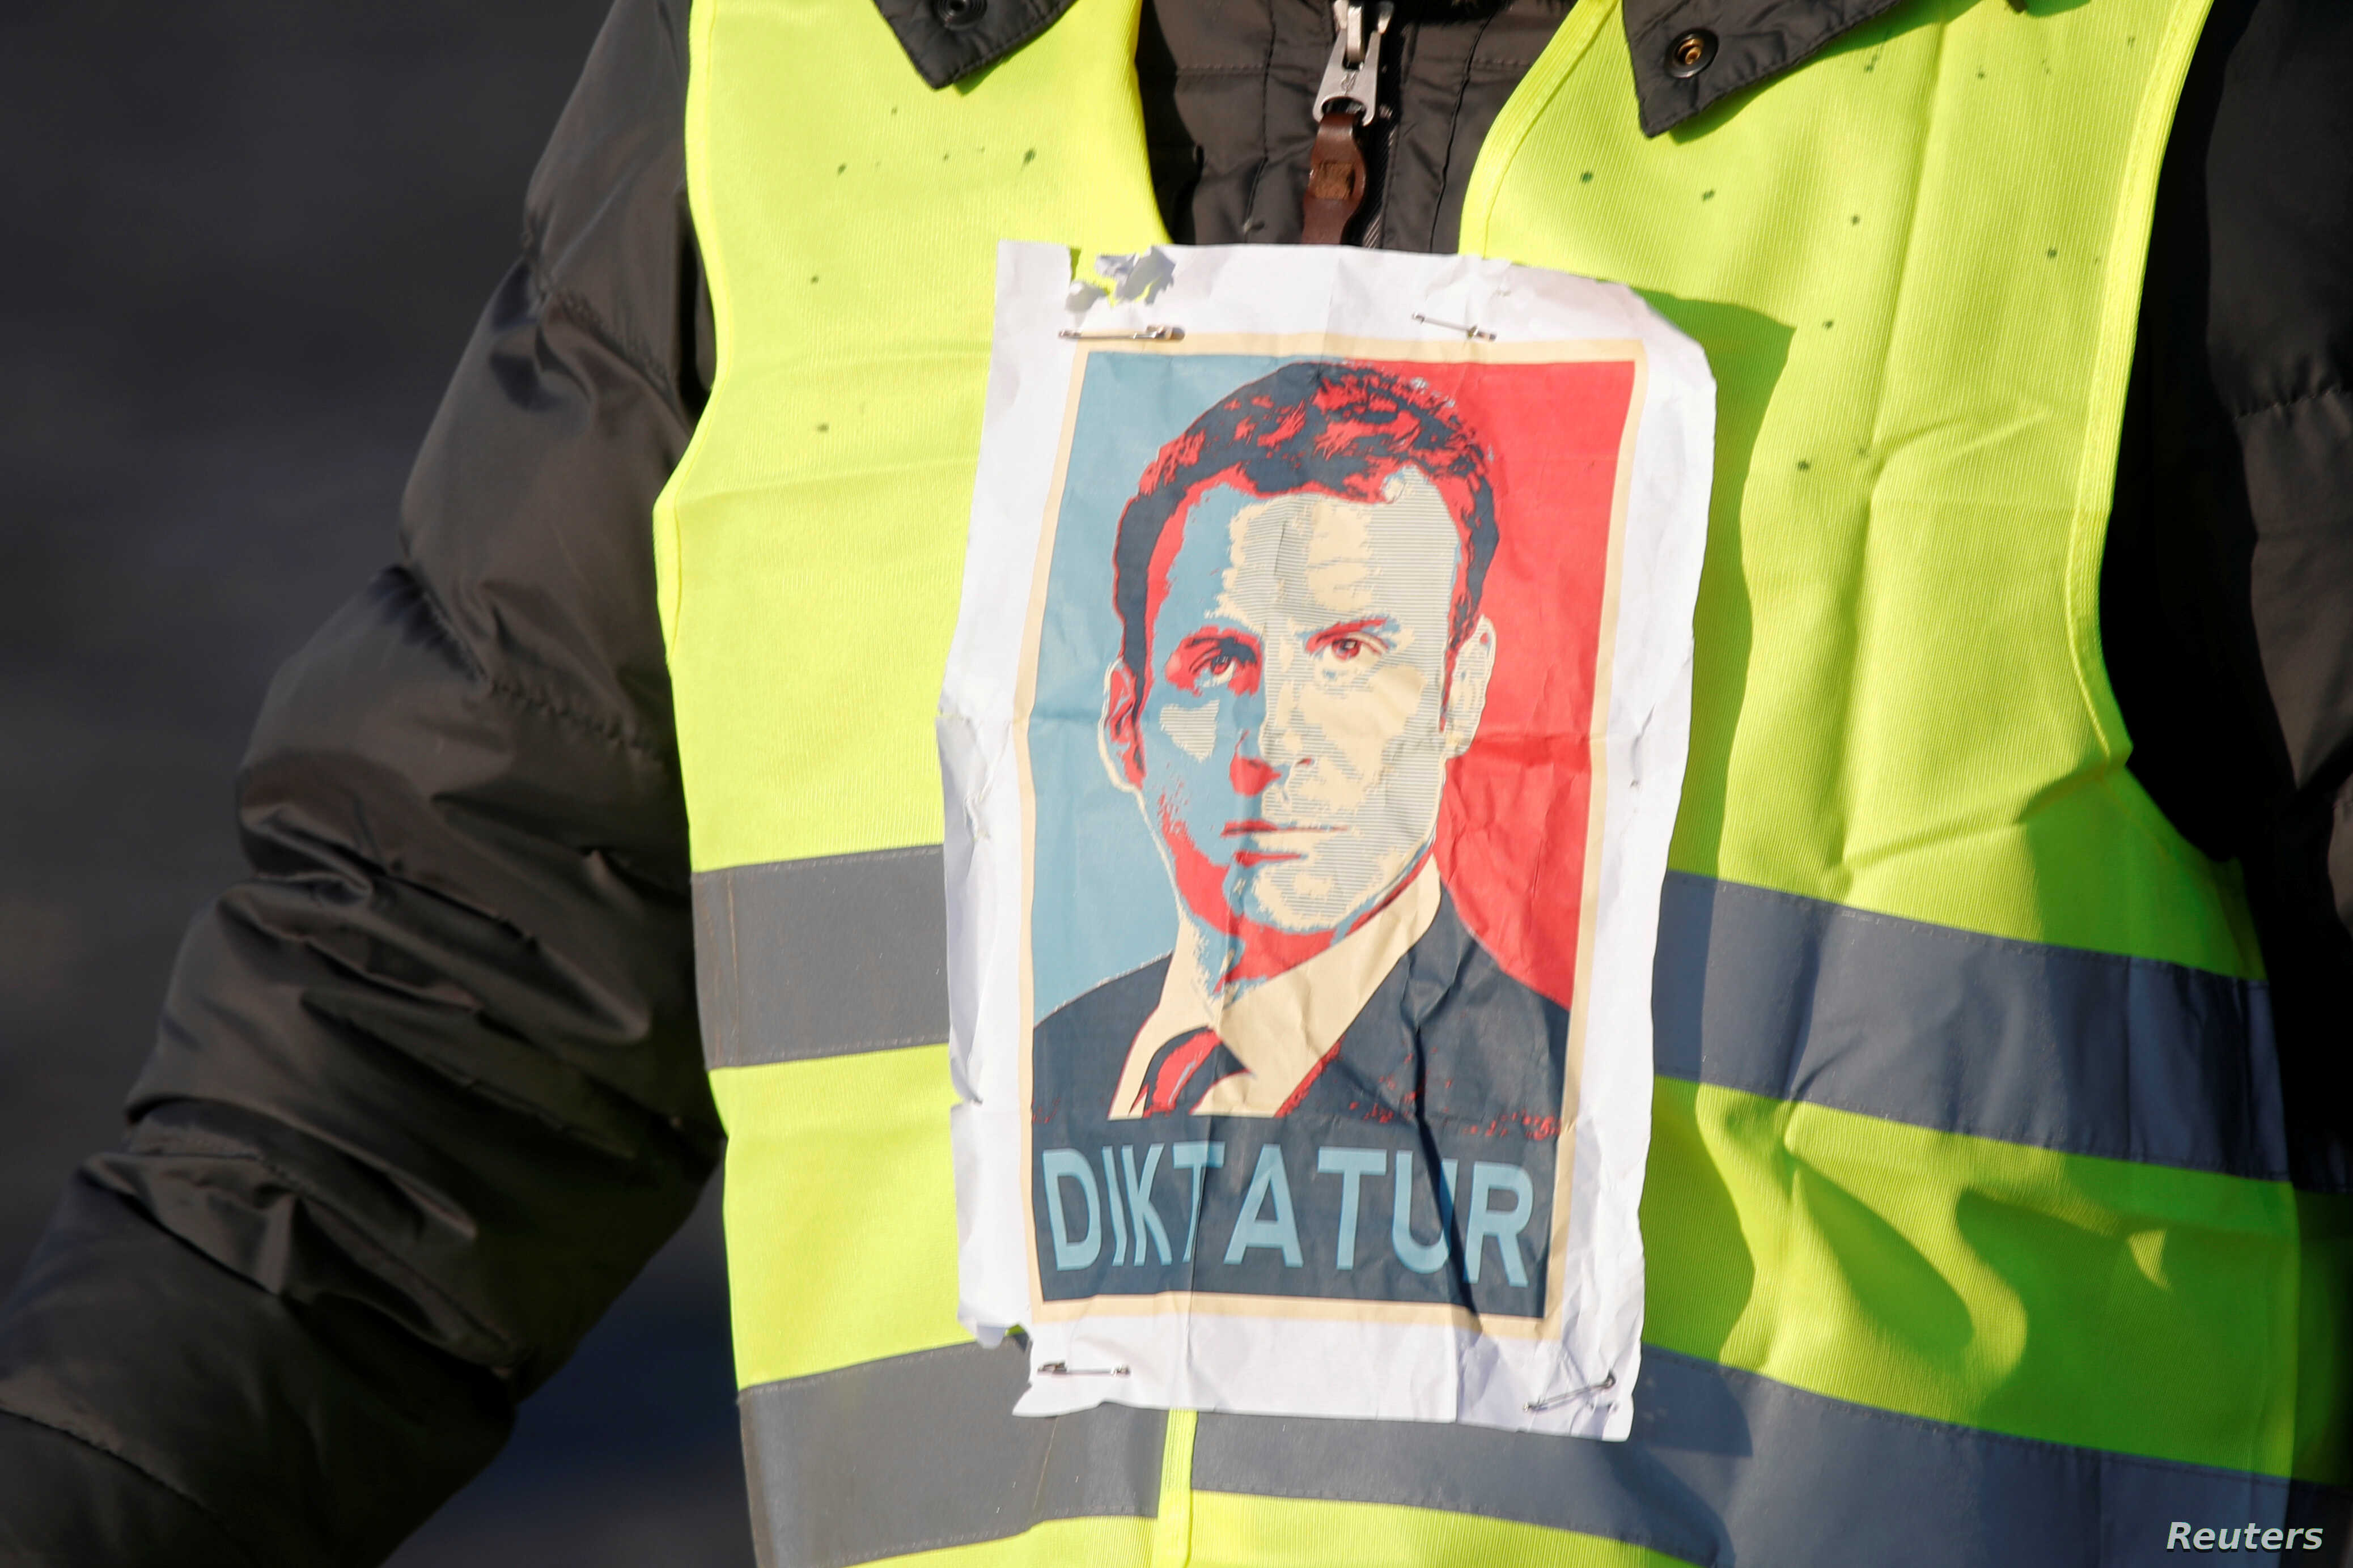 """A """"Yellow Vest"""" protester sports an image of French President Emmanuel Macron, with """"Diktatur,"""" the German word for """"Dictatorship,"""" written on it, in Paris, France, Nov. 17, 2018."""